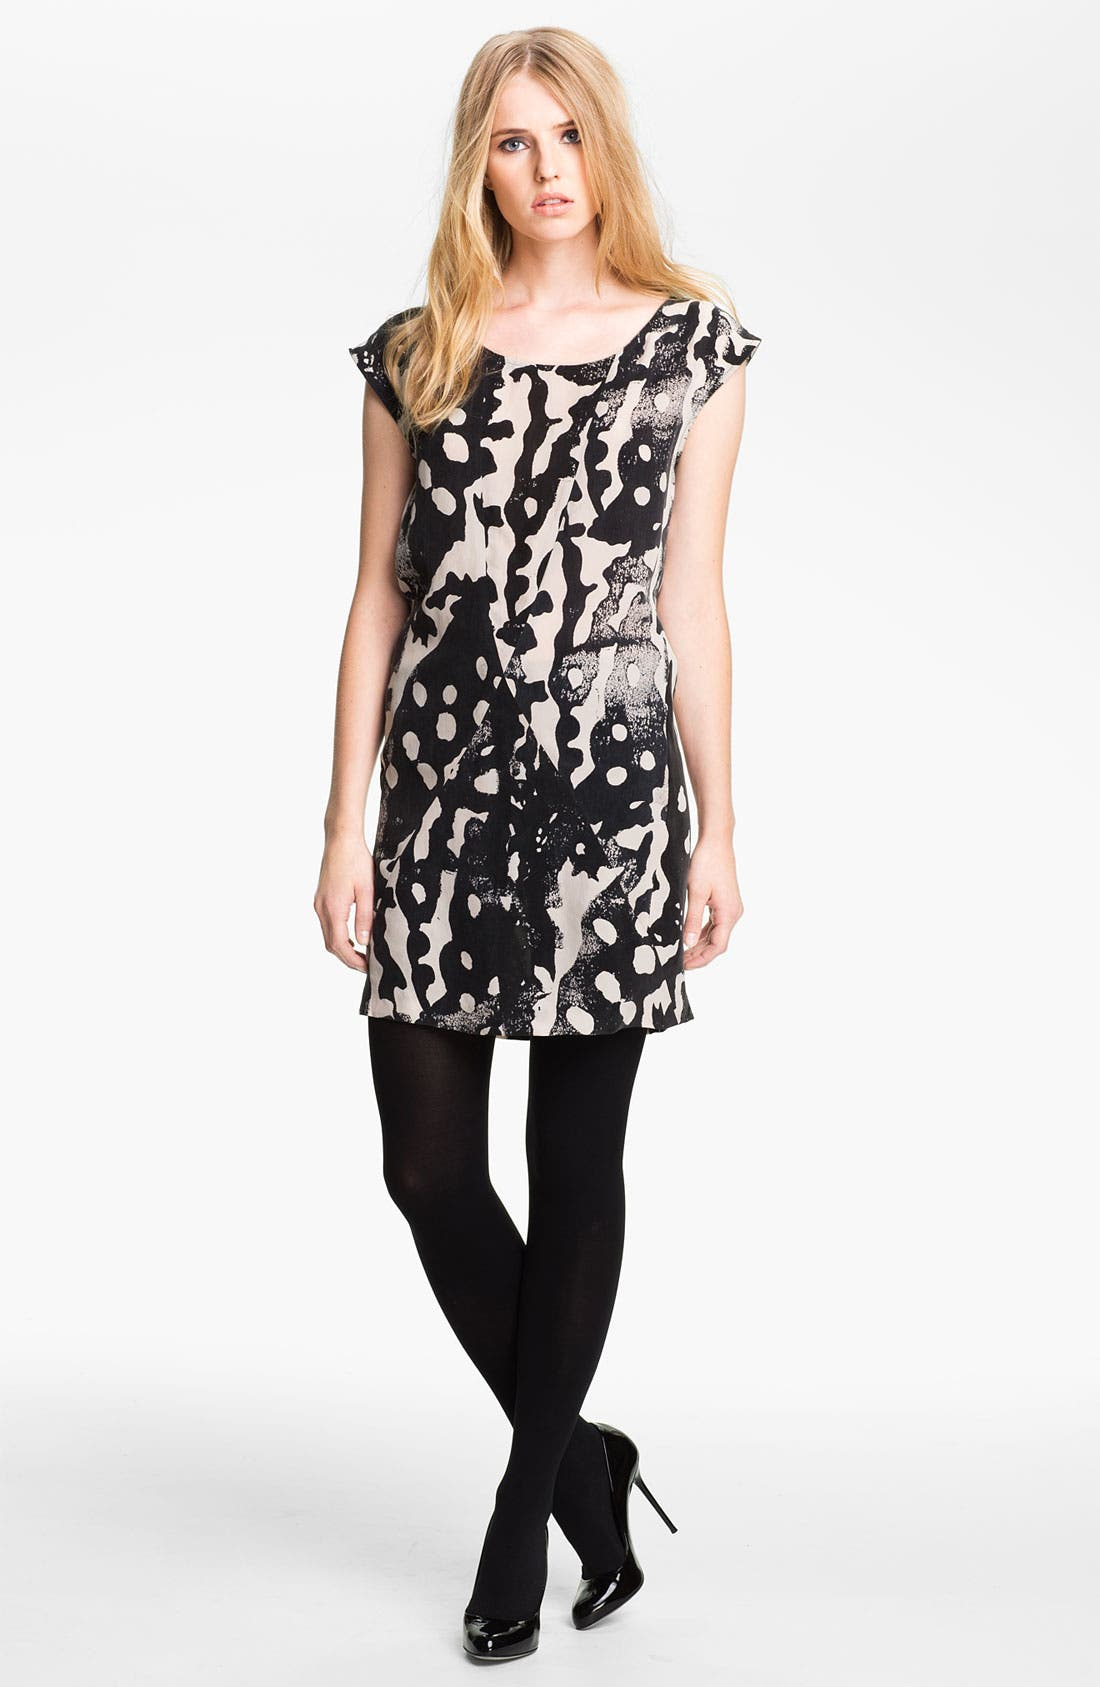 Main Image - Kelly Wearstler 'Mariner' Atlantis Print Sheath Dress